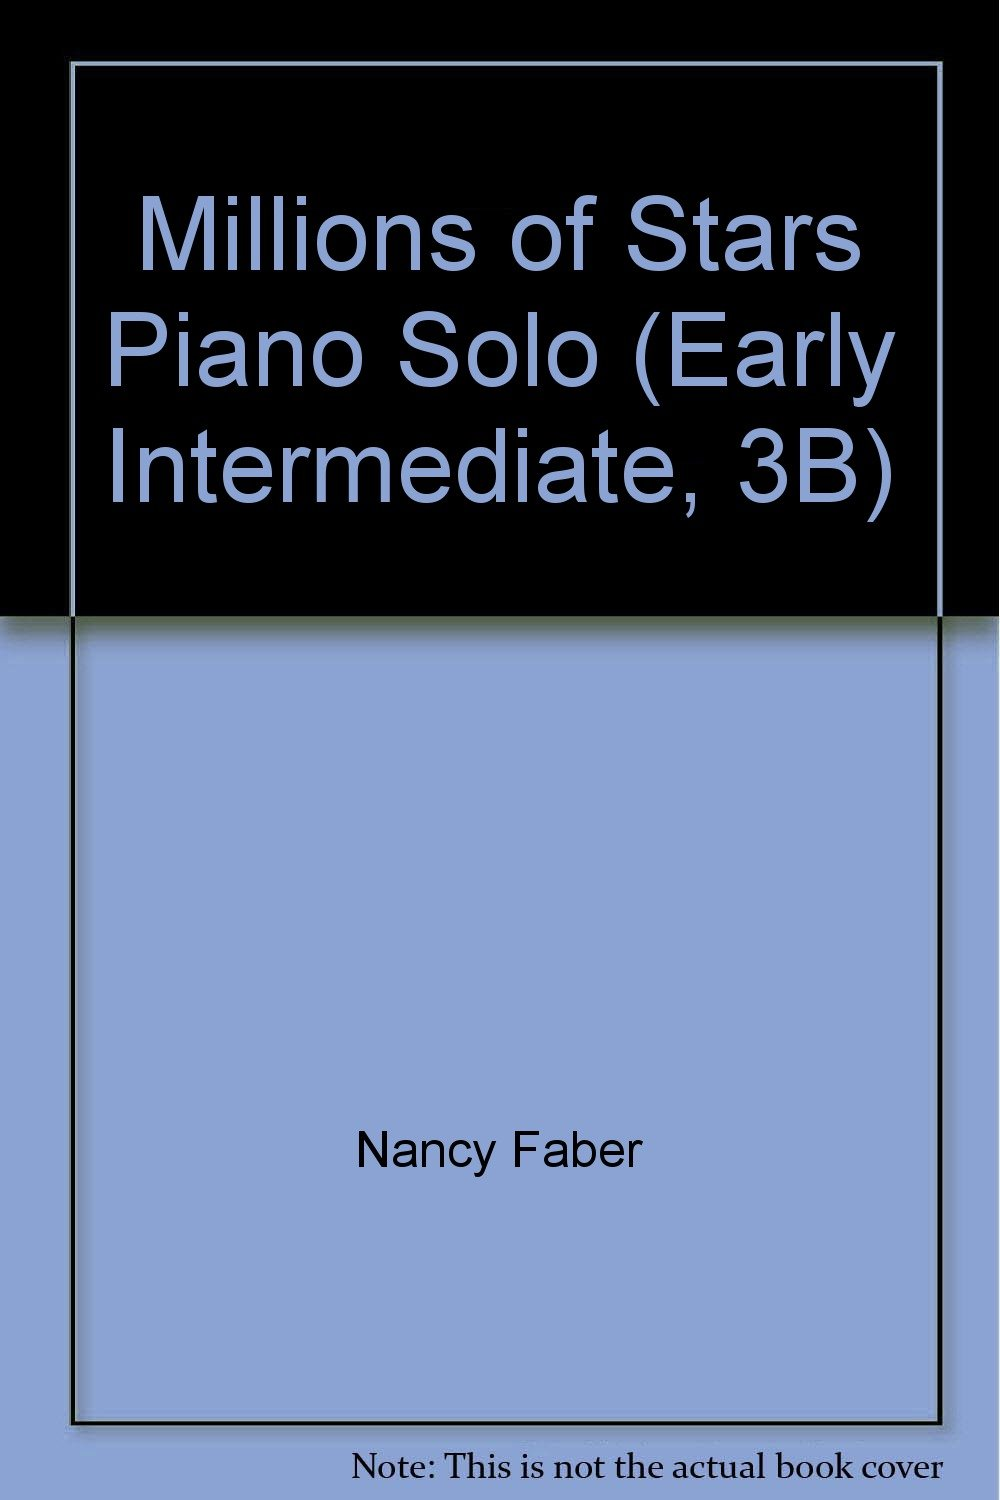 millions of stars piano solo early intermediate 3b